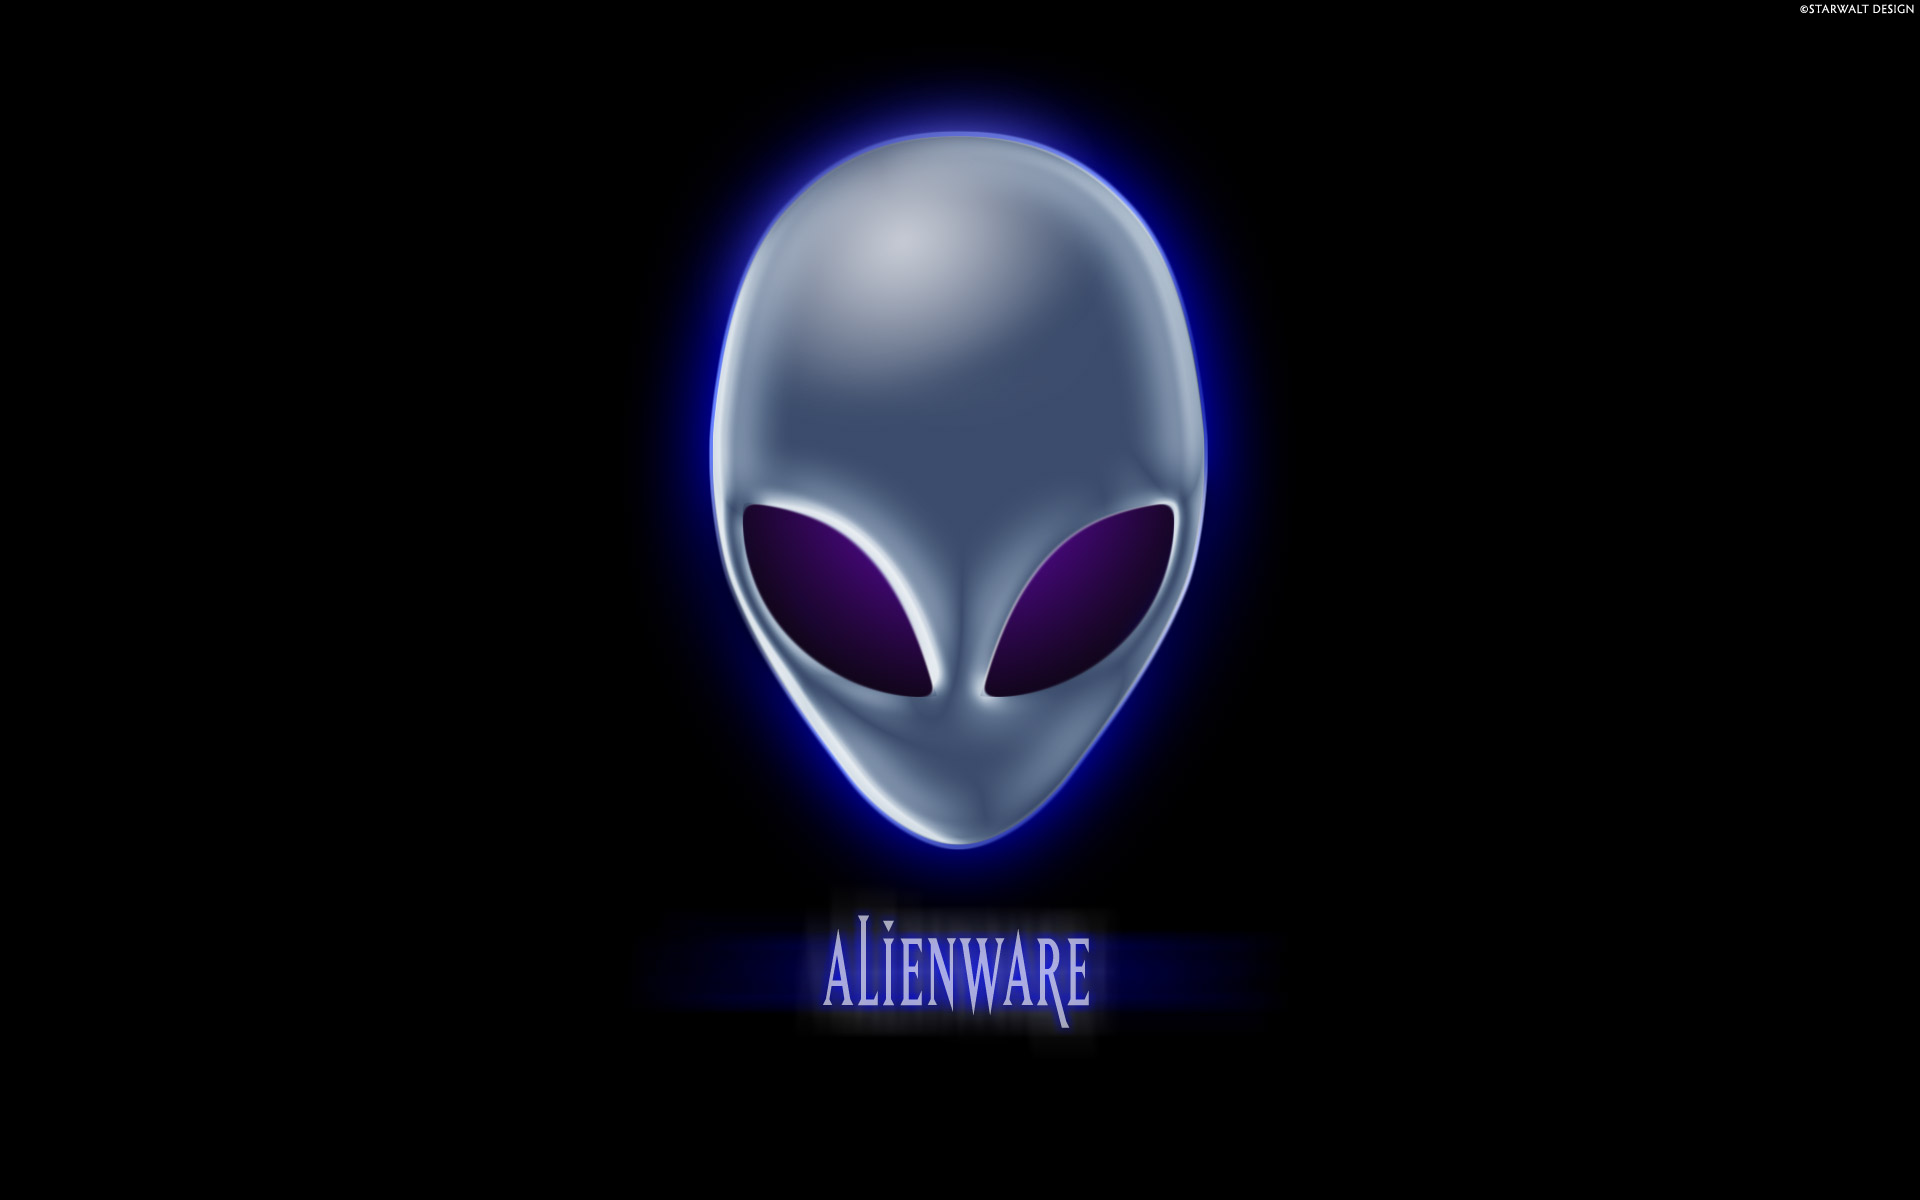 alienware wallpapers high quality | download free